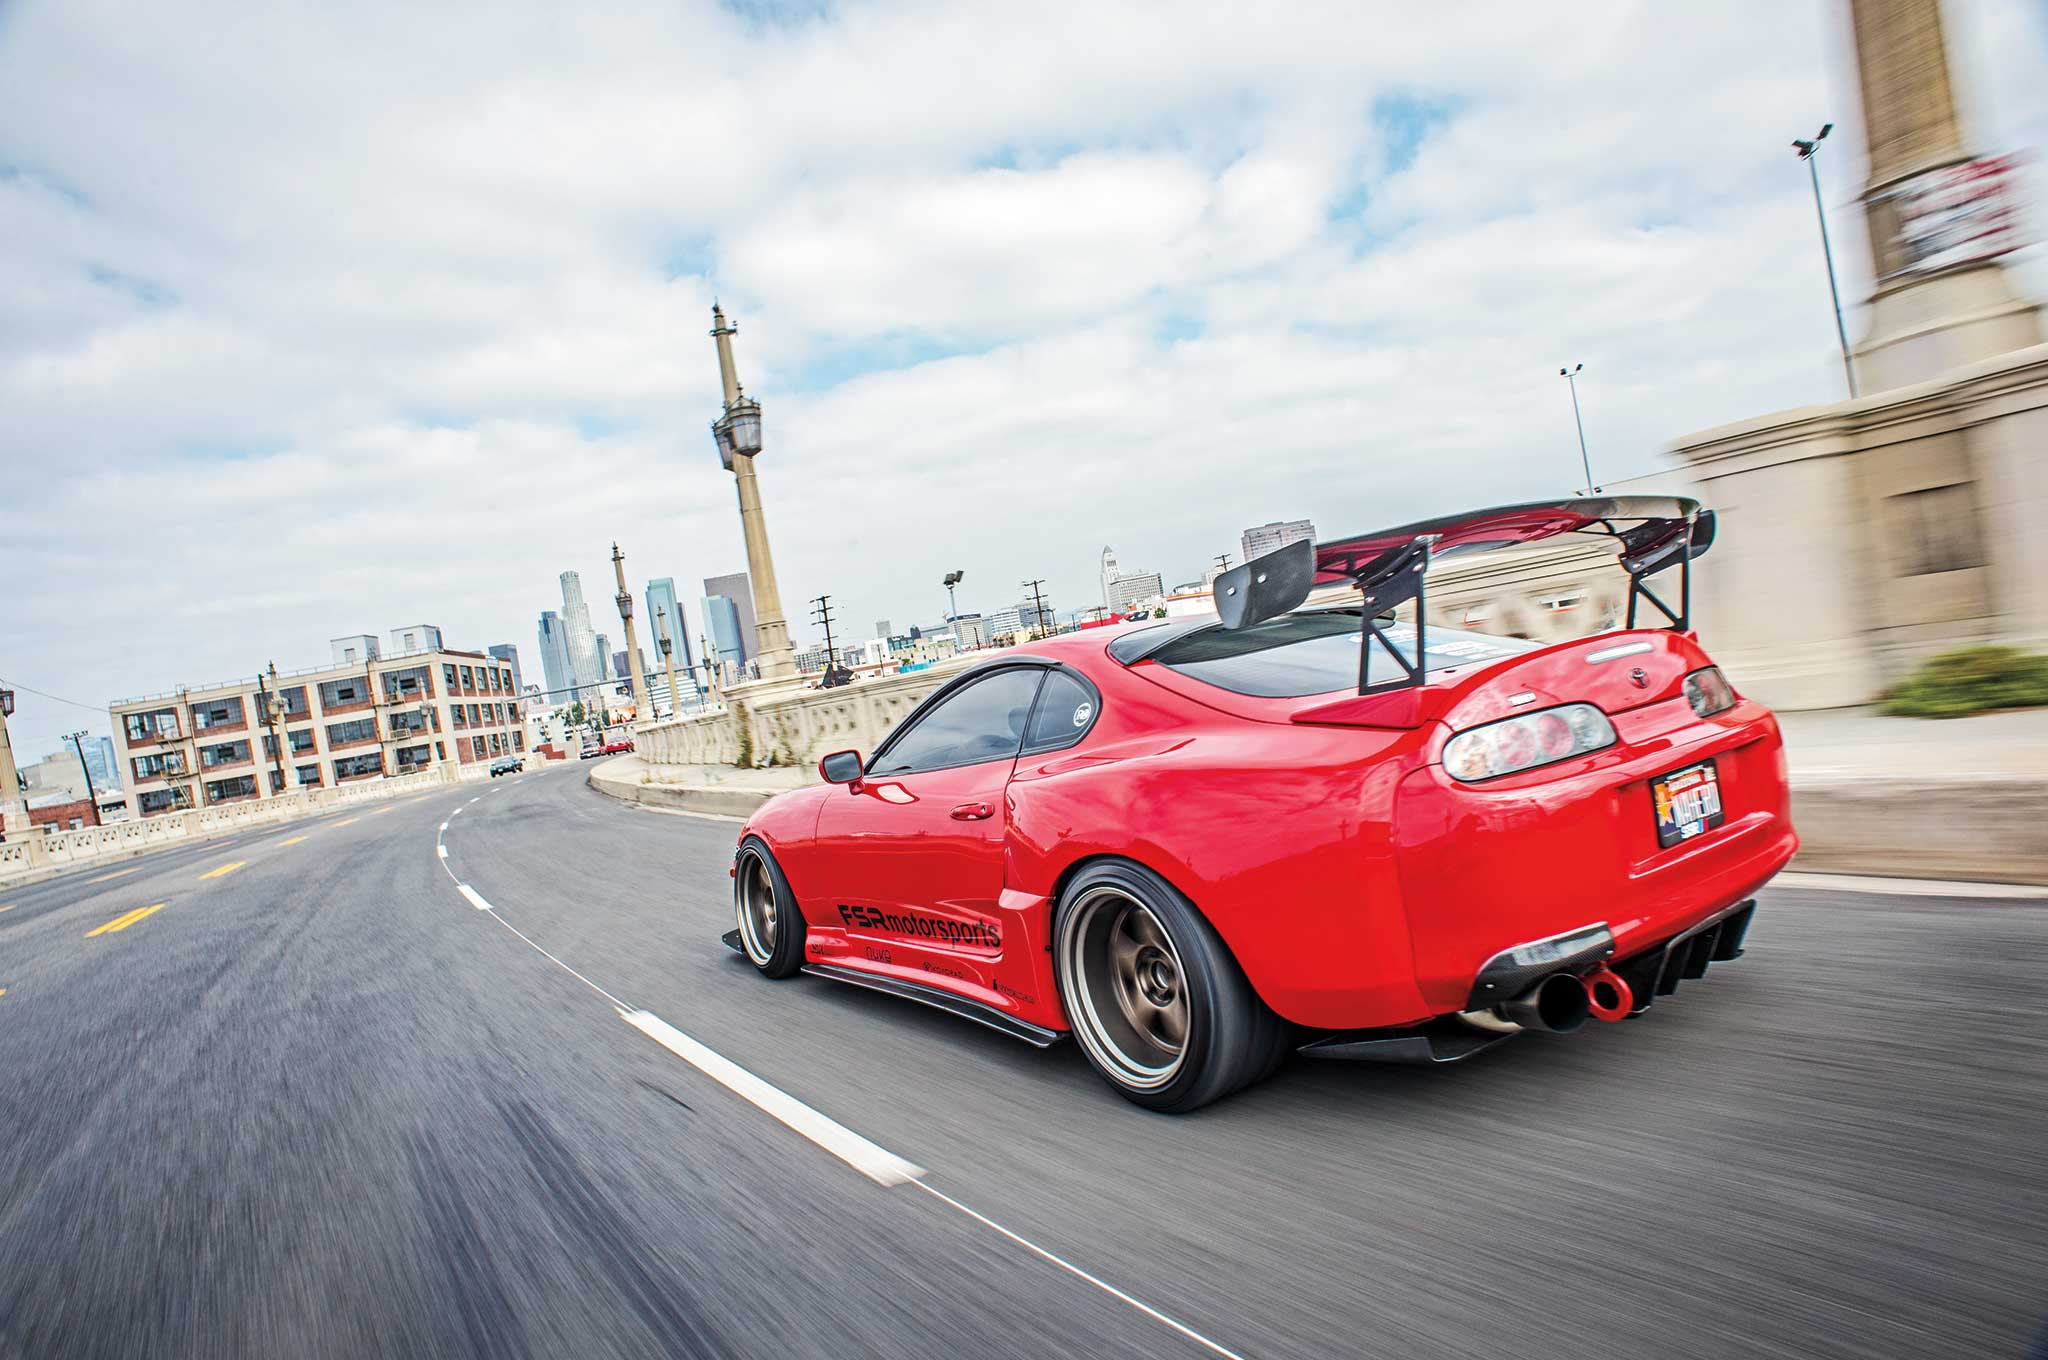 10 Best Supra Builds - According To You